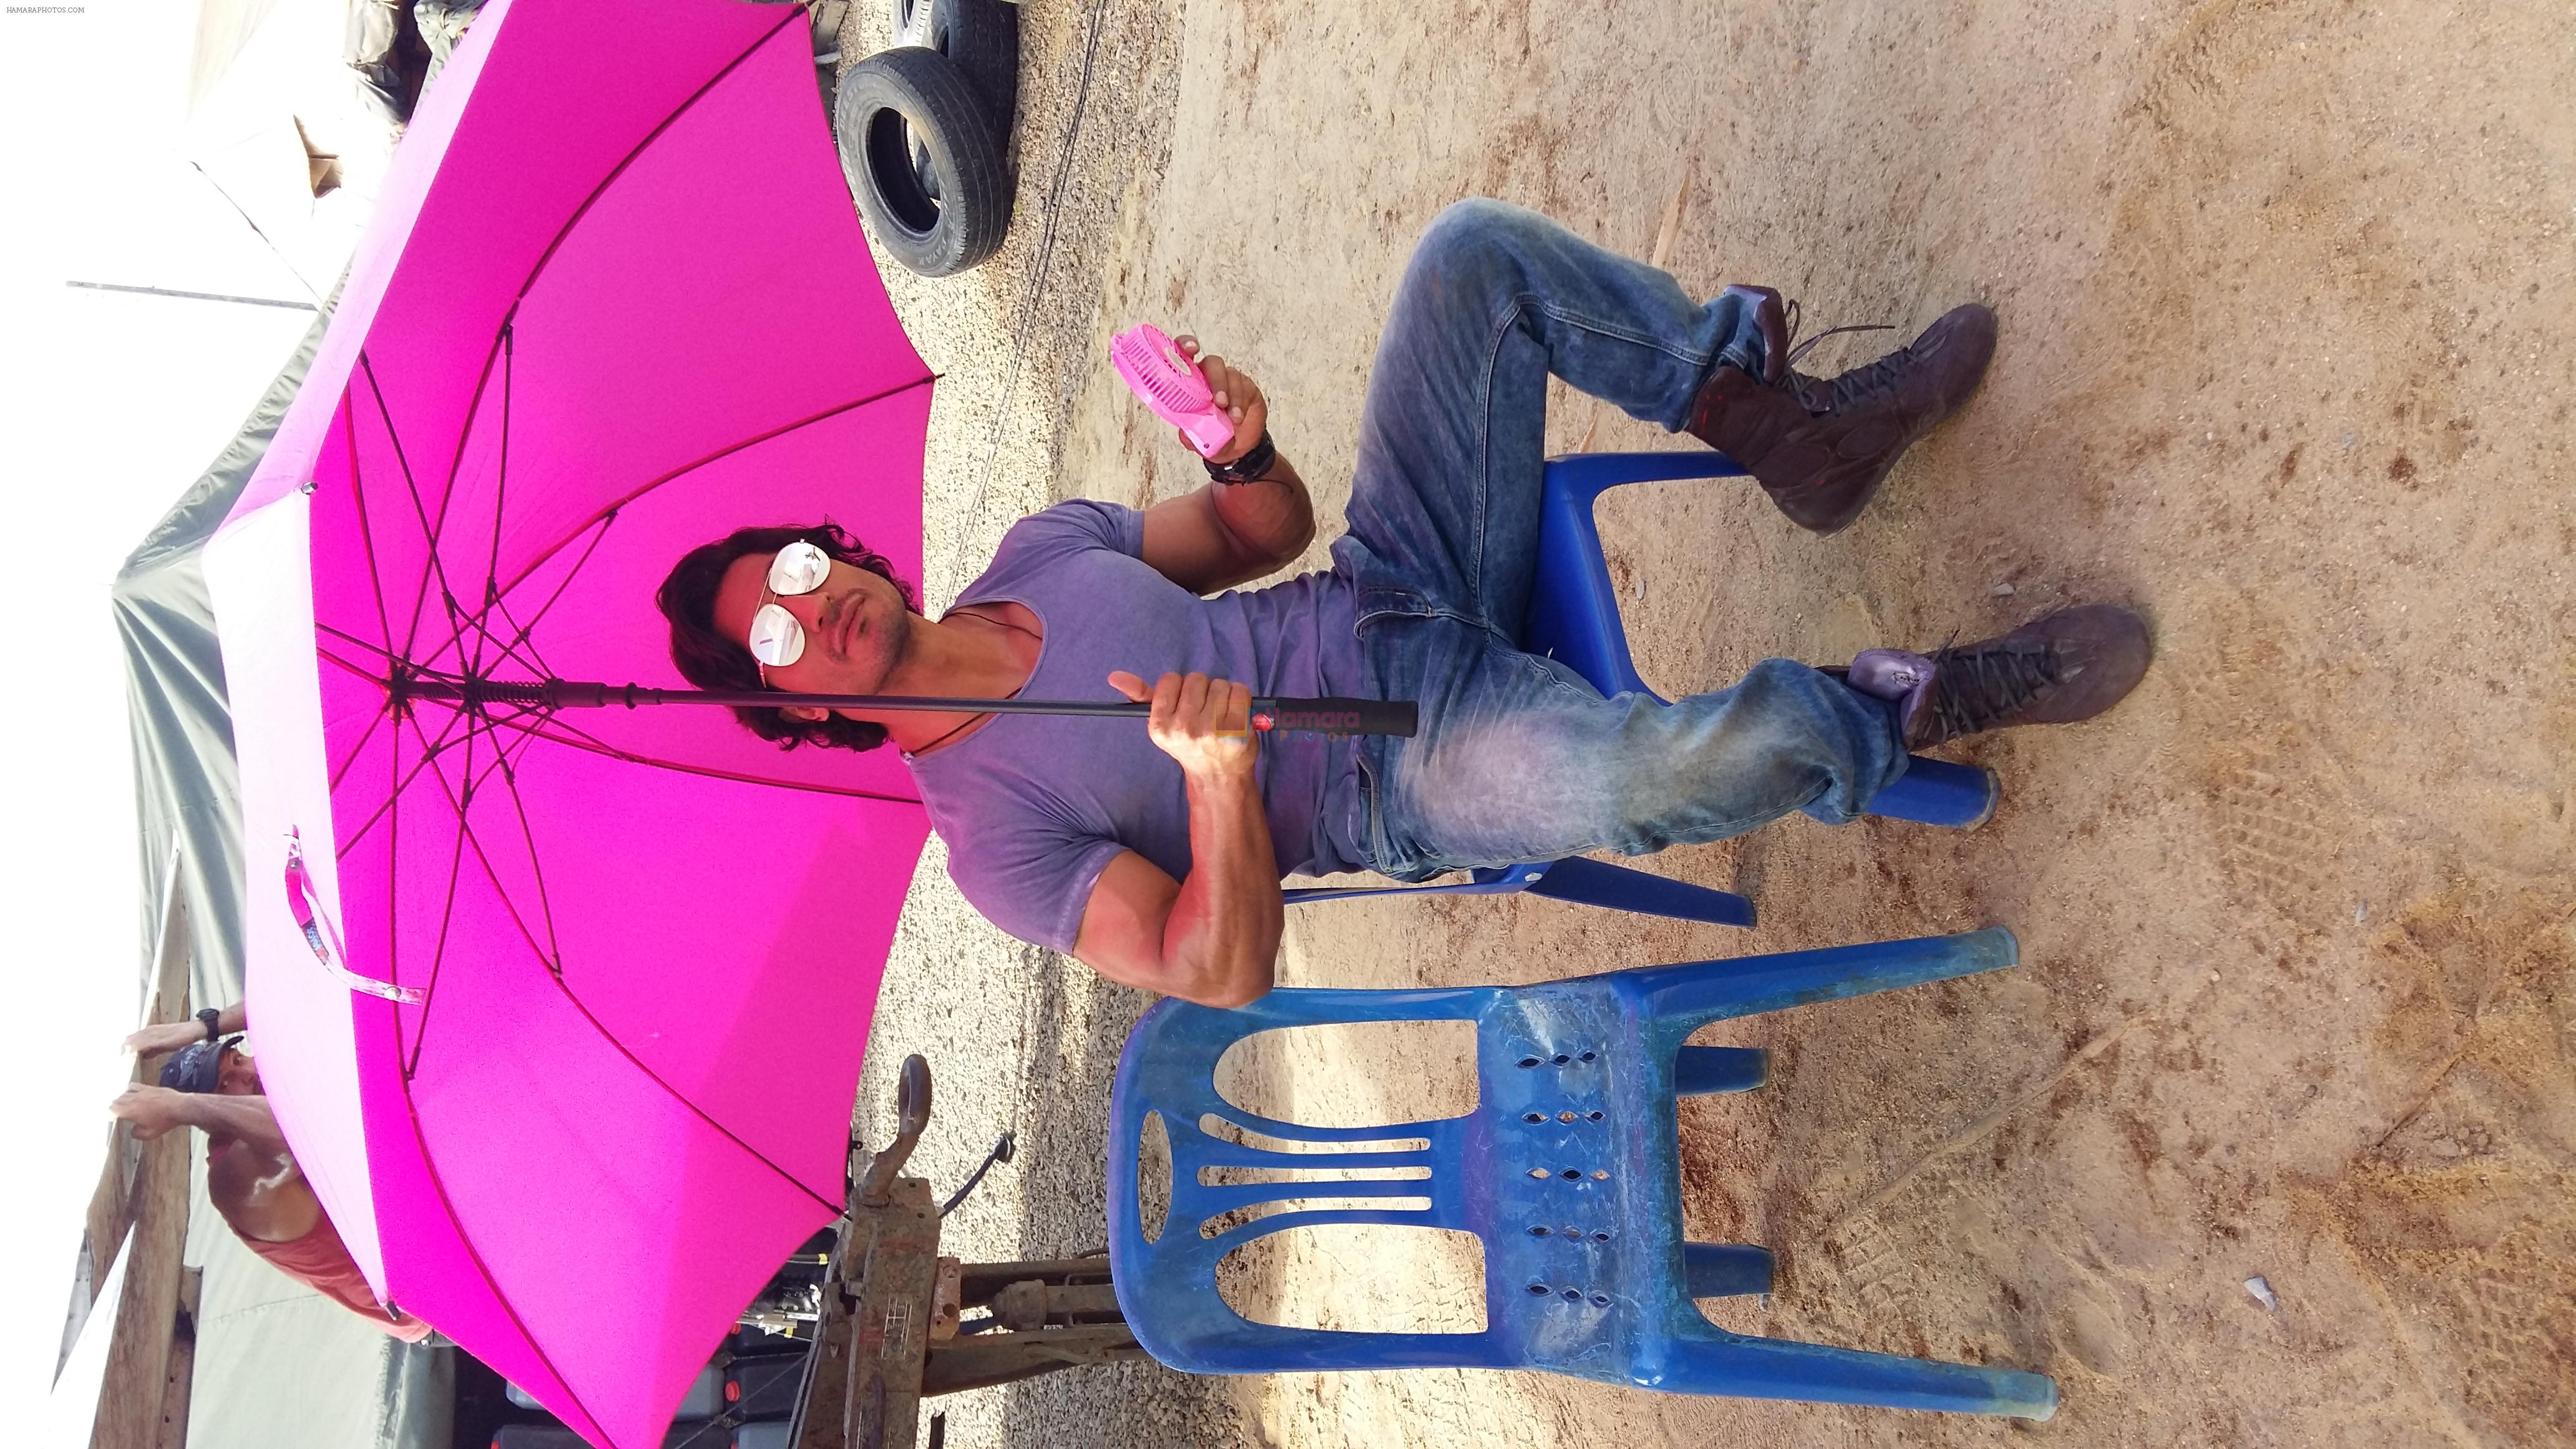 Vidyut Jammwal with a pink fan and umbrella on the sets of Commando 2 clicked by his Co star Adah sharma